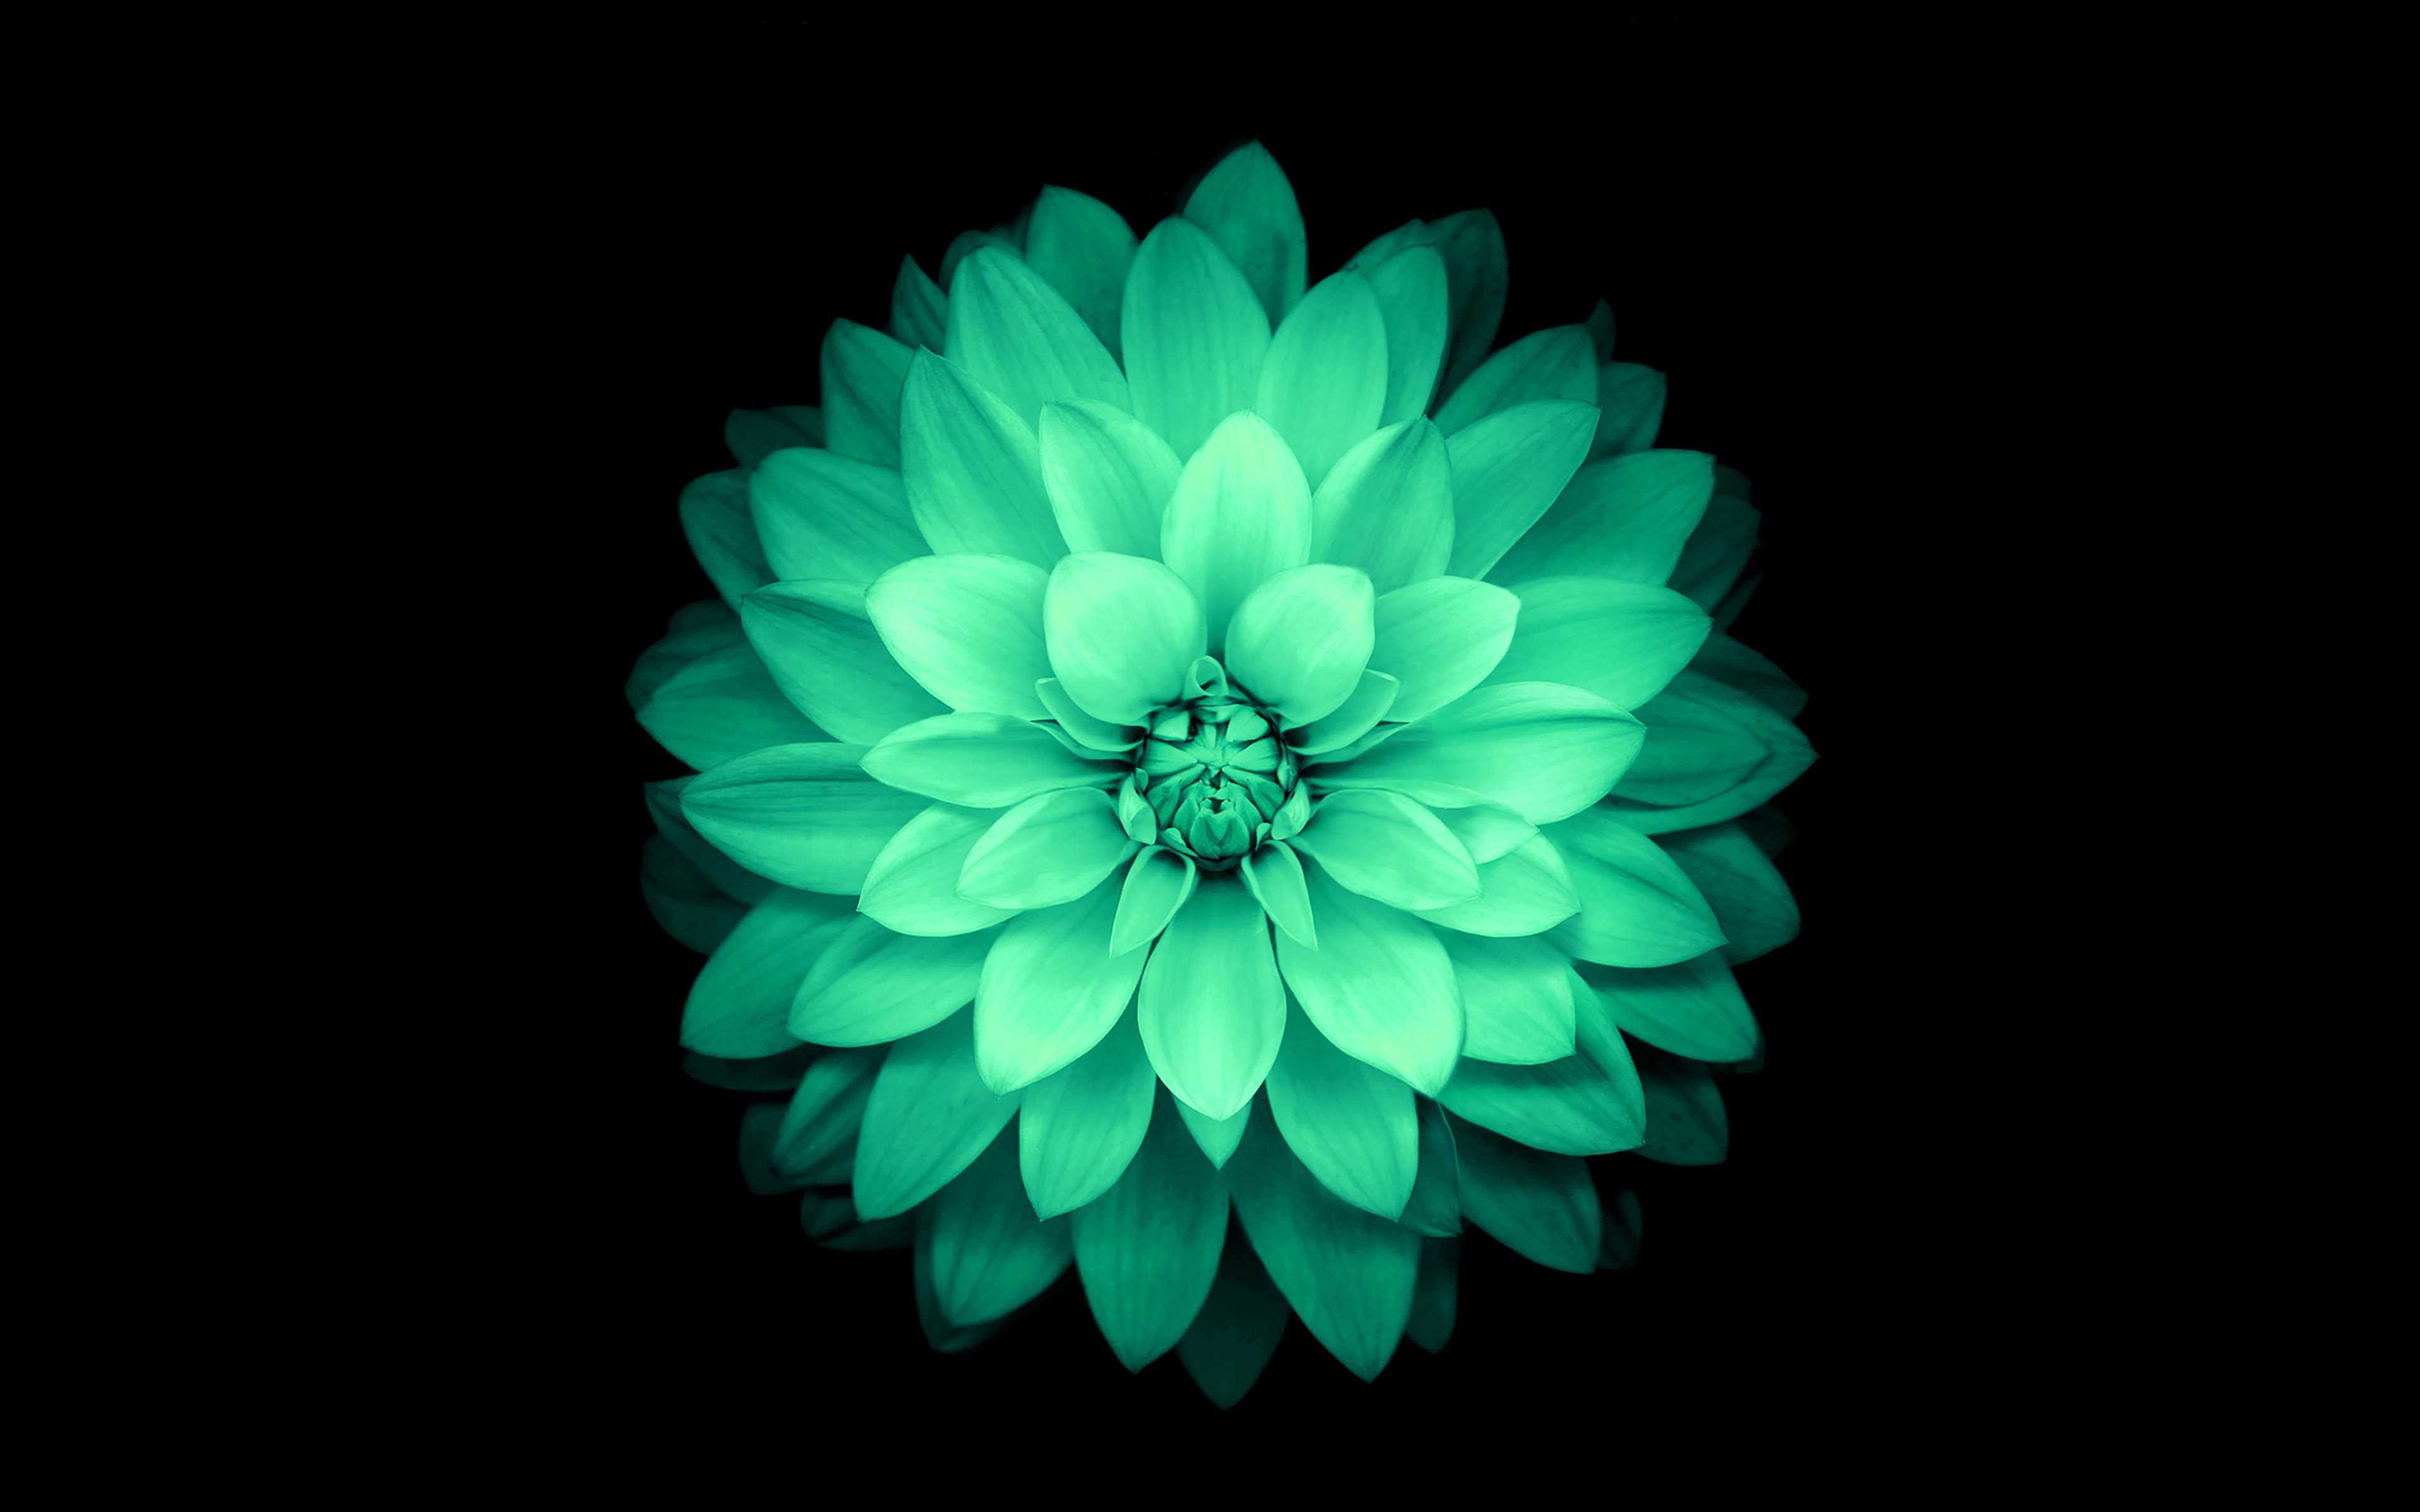 Cute Animal Summer Wallpaper Pictures Ad76 Apple Green Lotus Iphone6 Plus Ios8 Flower Papers Co